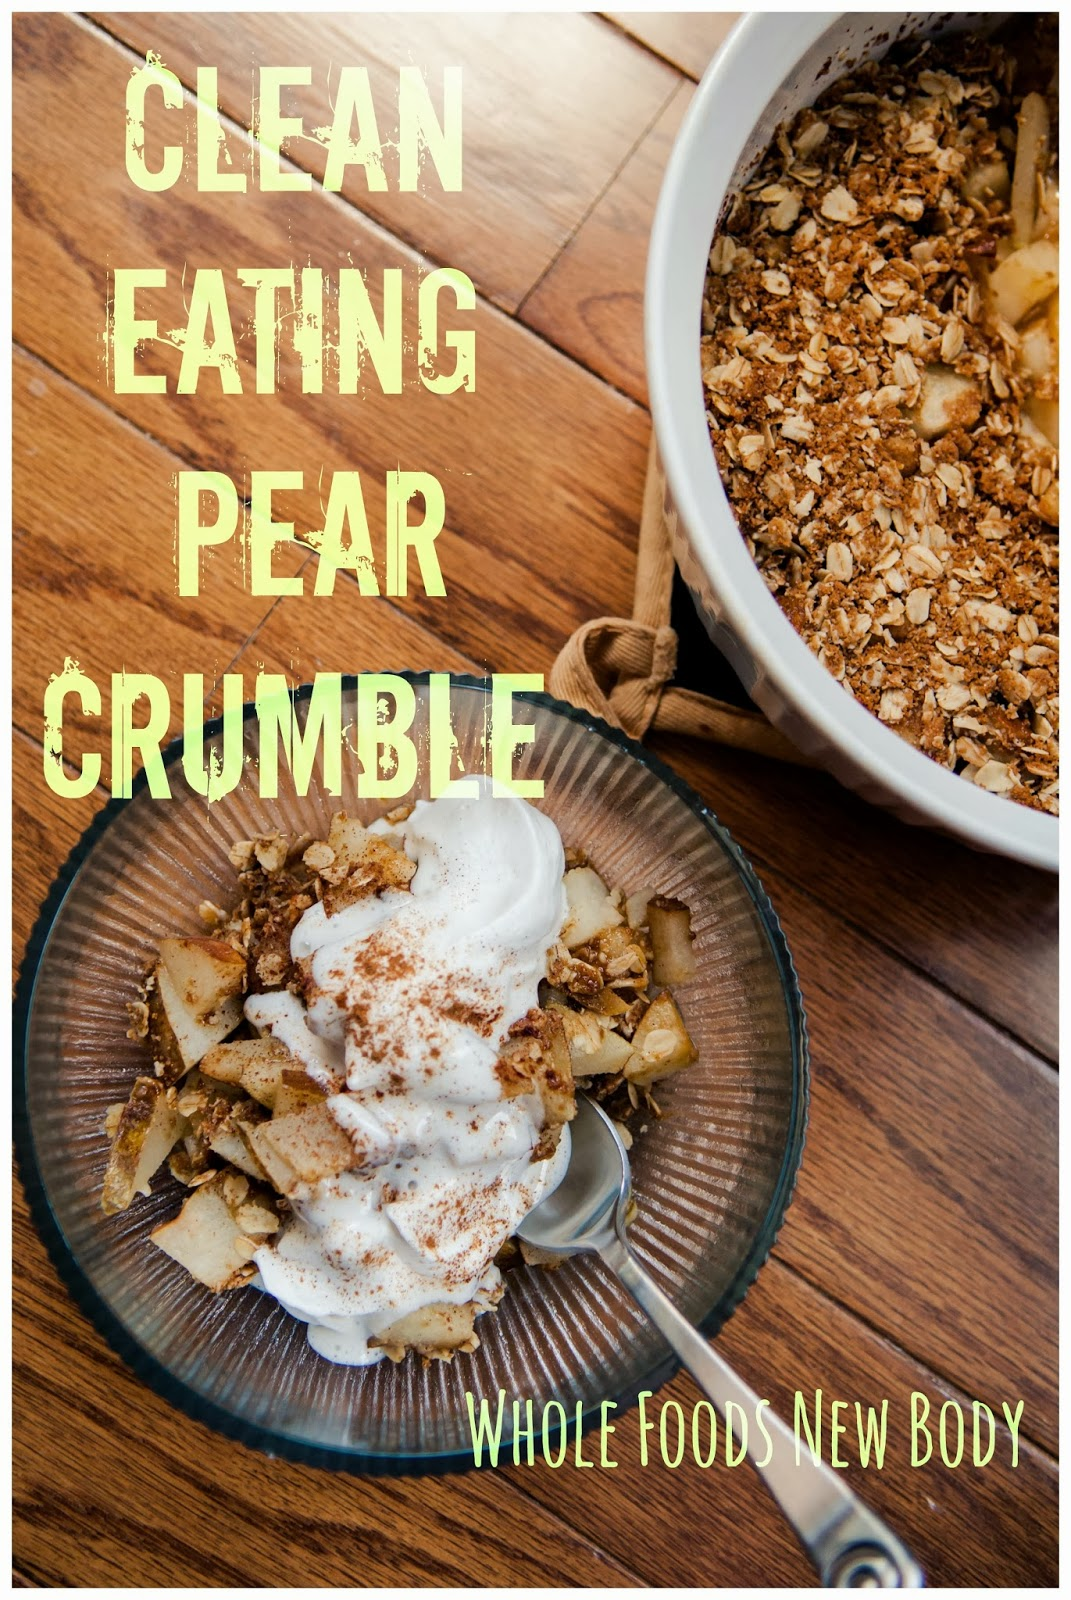 Whole foodsw body clean eating pear crumble thursday september 26 2013 forumfinder Images